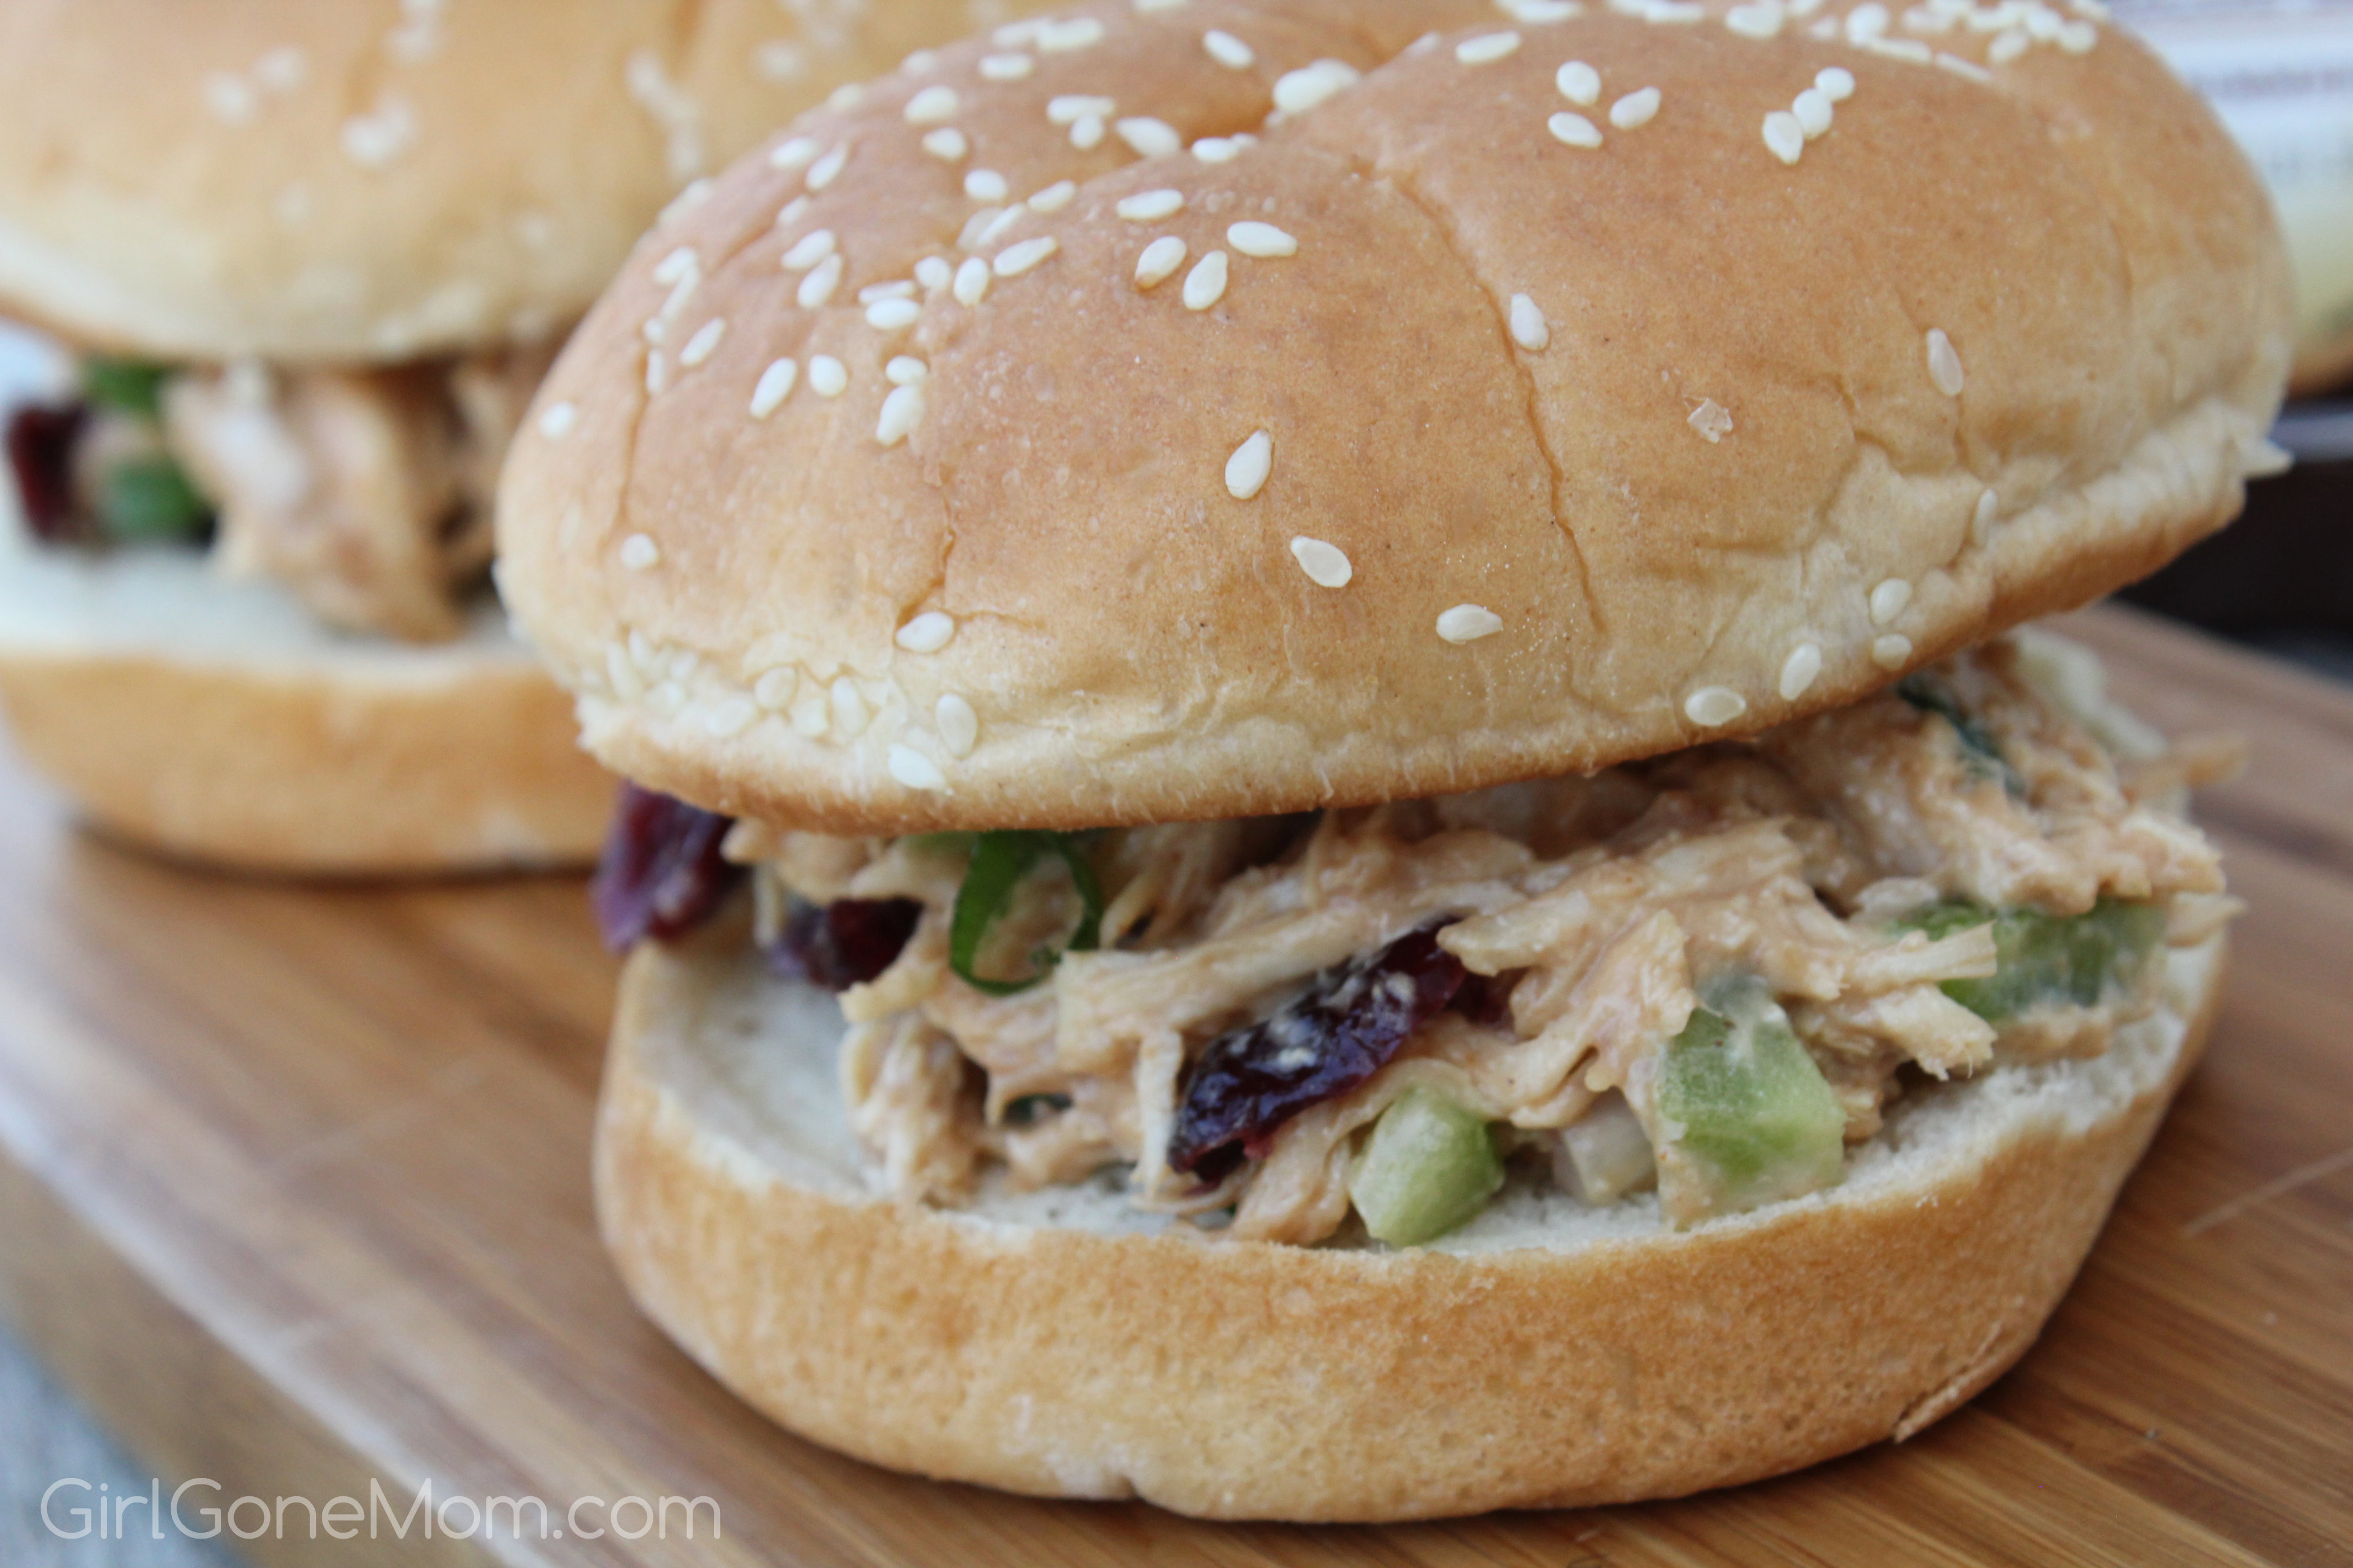 ... Meals: Chilled Barbecue Chicken Salad Sandwiches - Girl Gone Mom